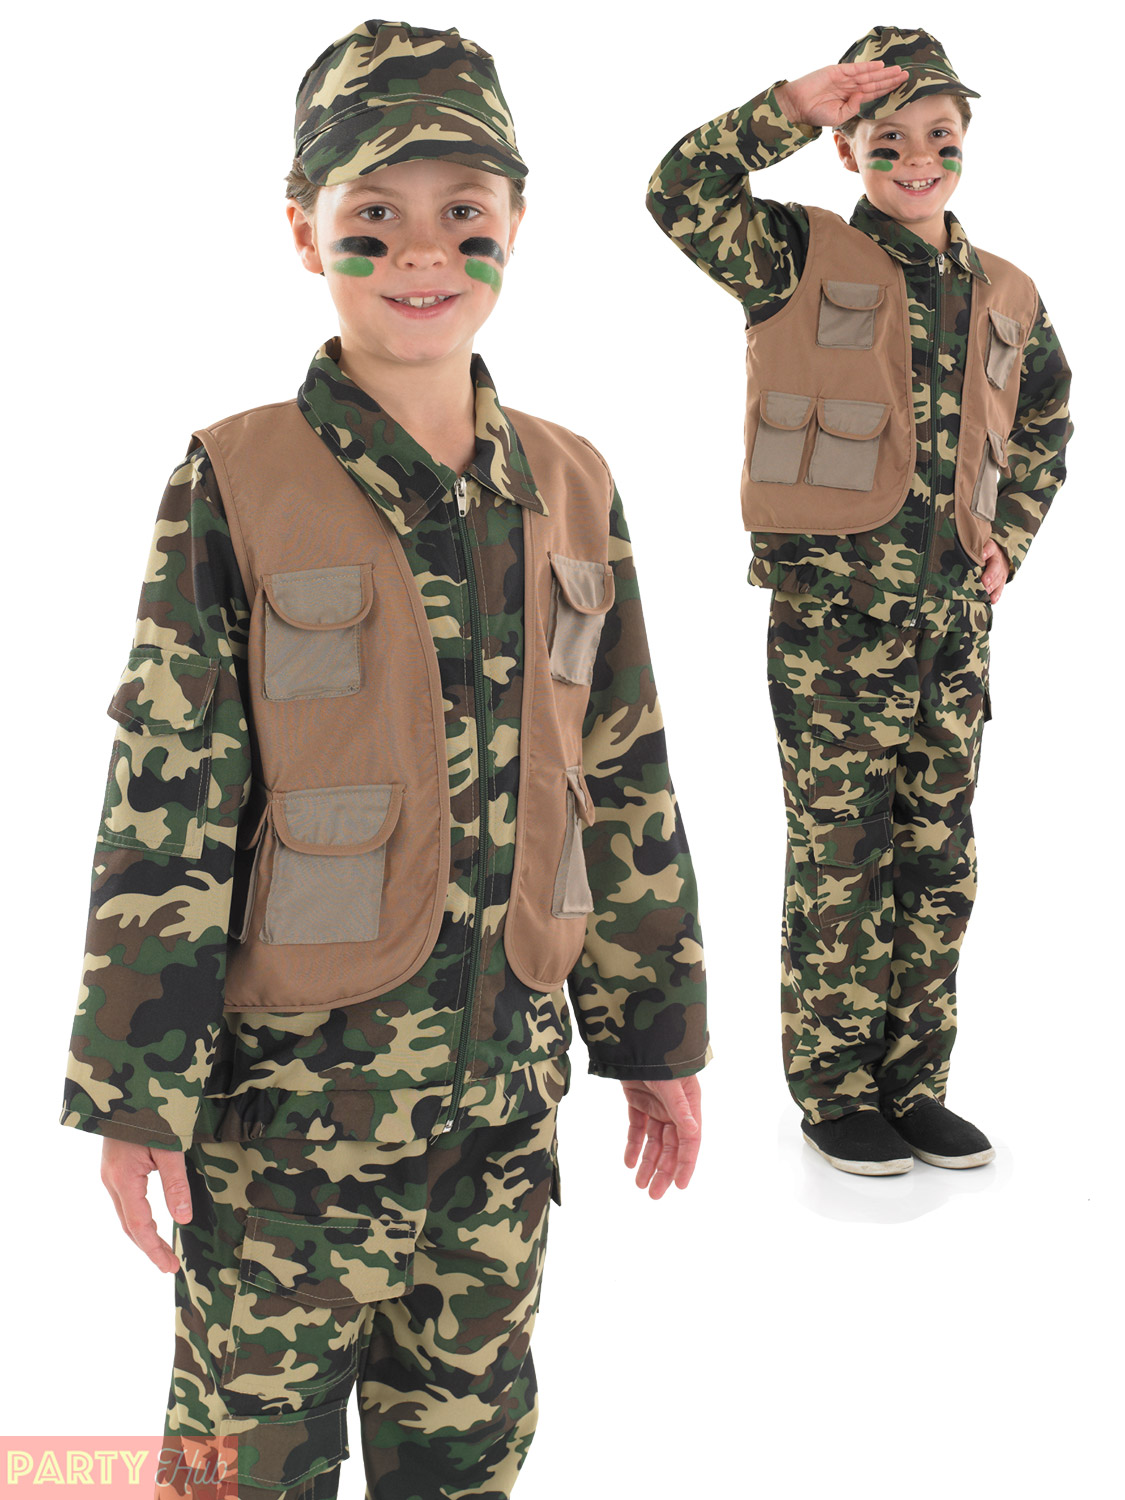 90d4802a2 Army Soldier Desert Style Boys S Fancy Dress up Costume Outfit 4-6 ...